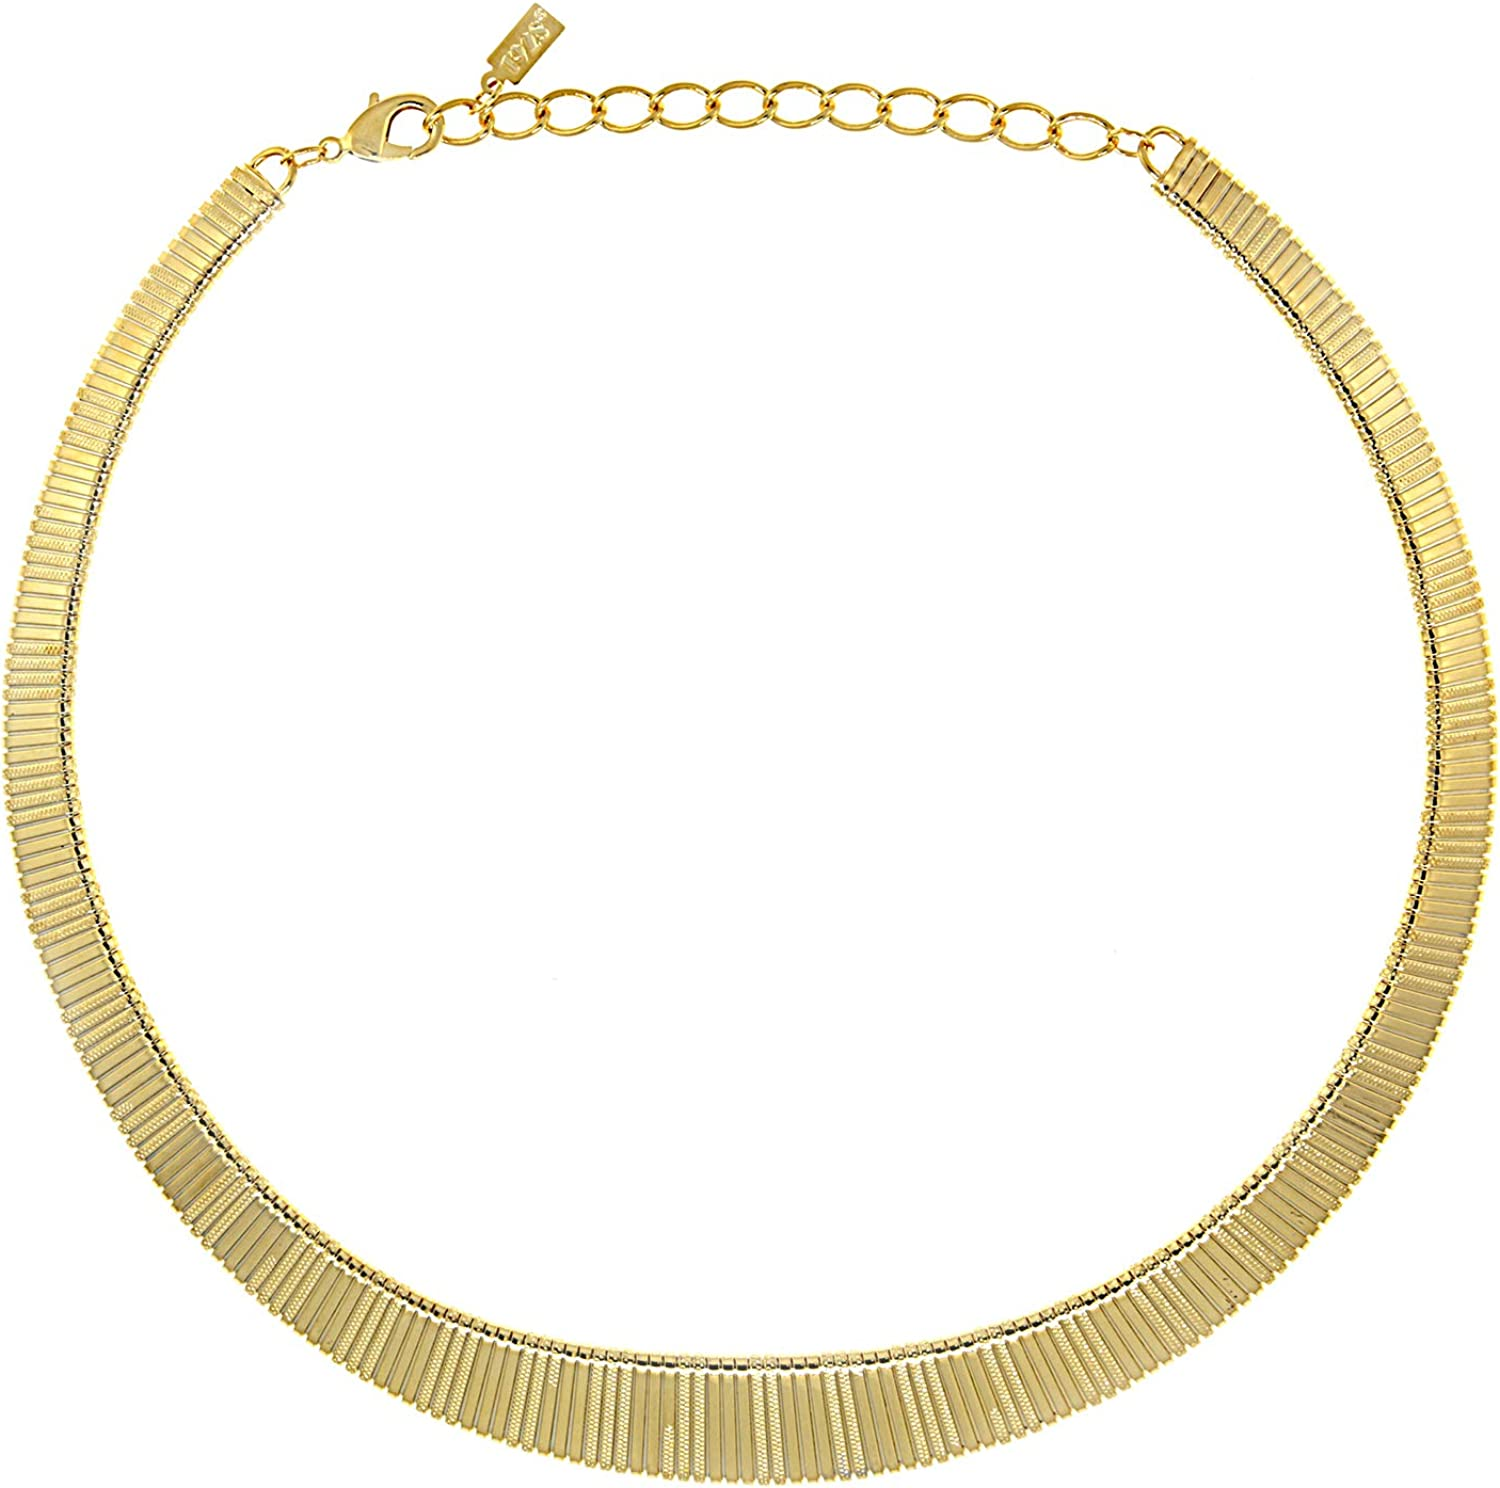 1928 Jewelry 14K Gold Dipped Collar Necklace 18 in Adj